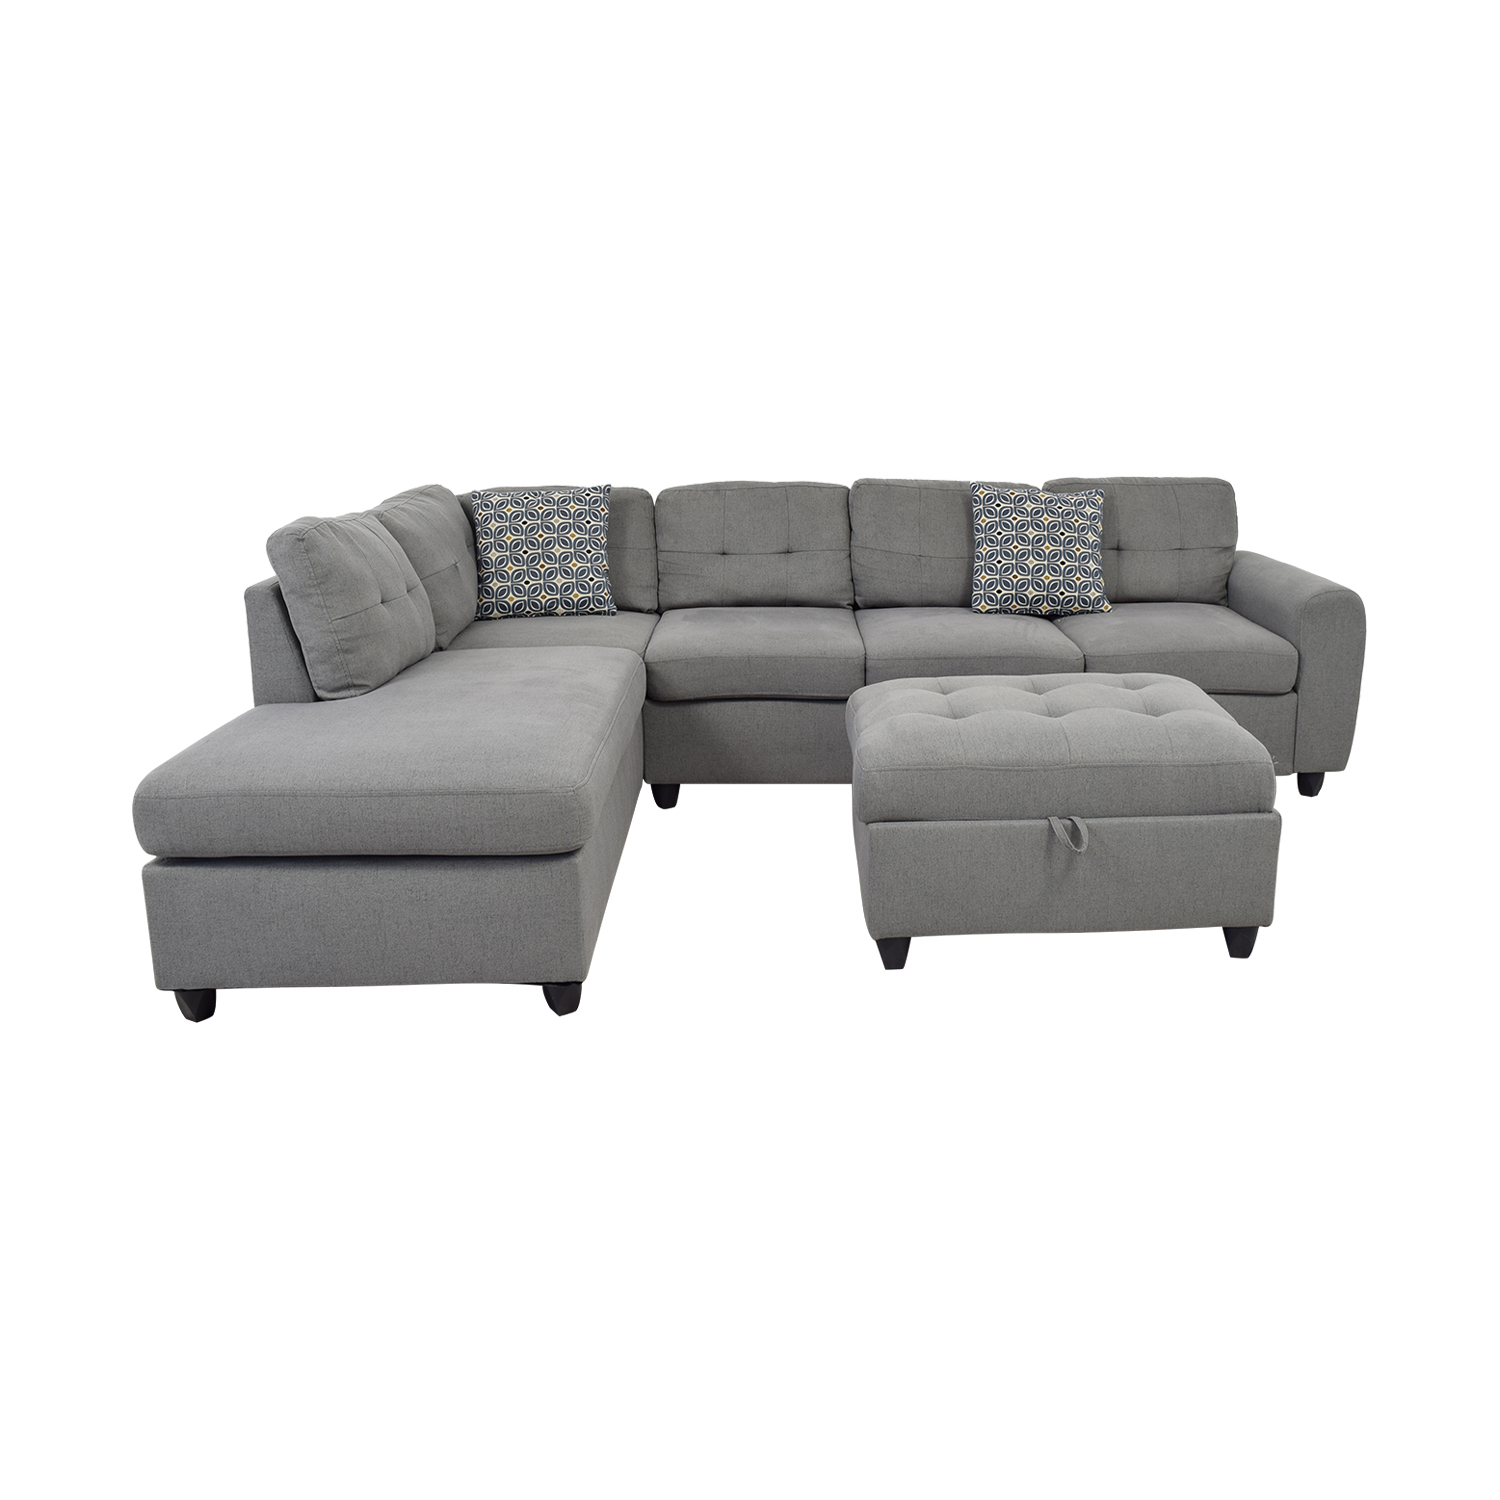 Stonenesse Stonenesse Grey Semi-Tufted Chaise Sectional with Ottoman nj